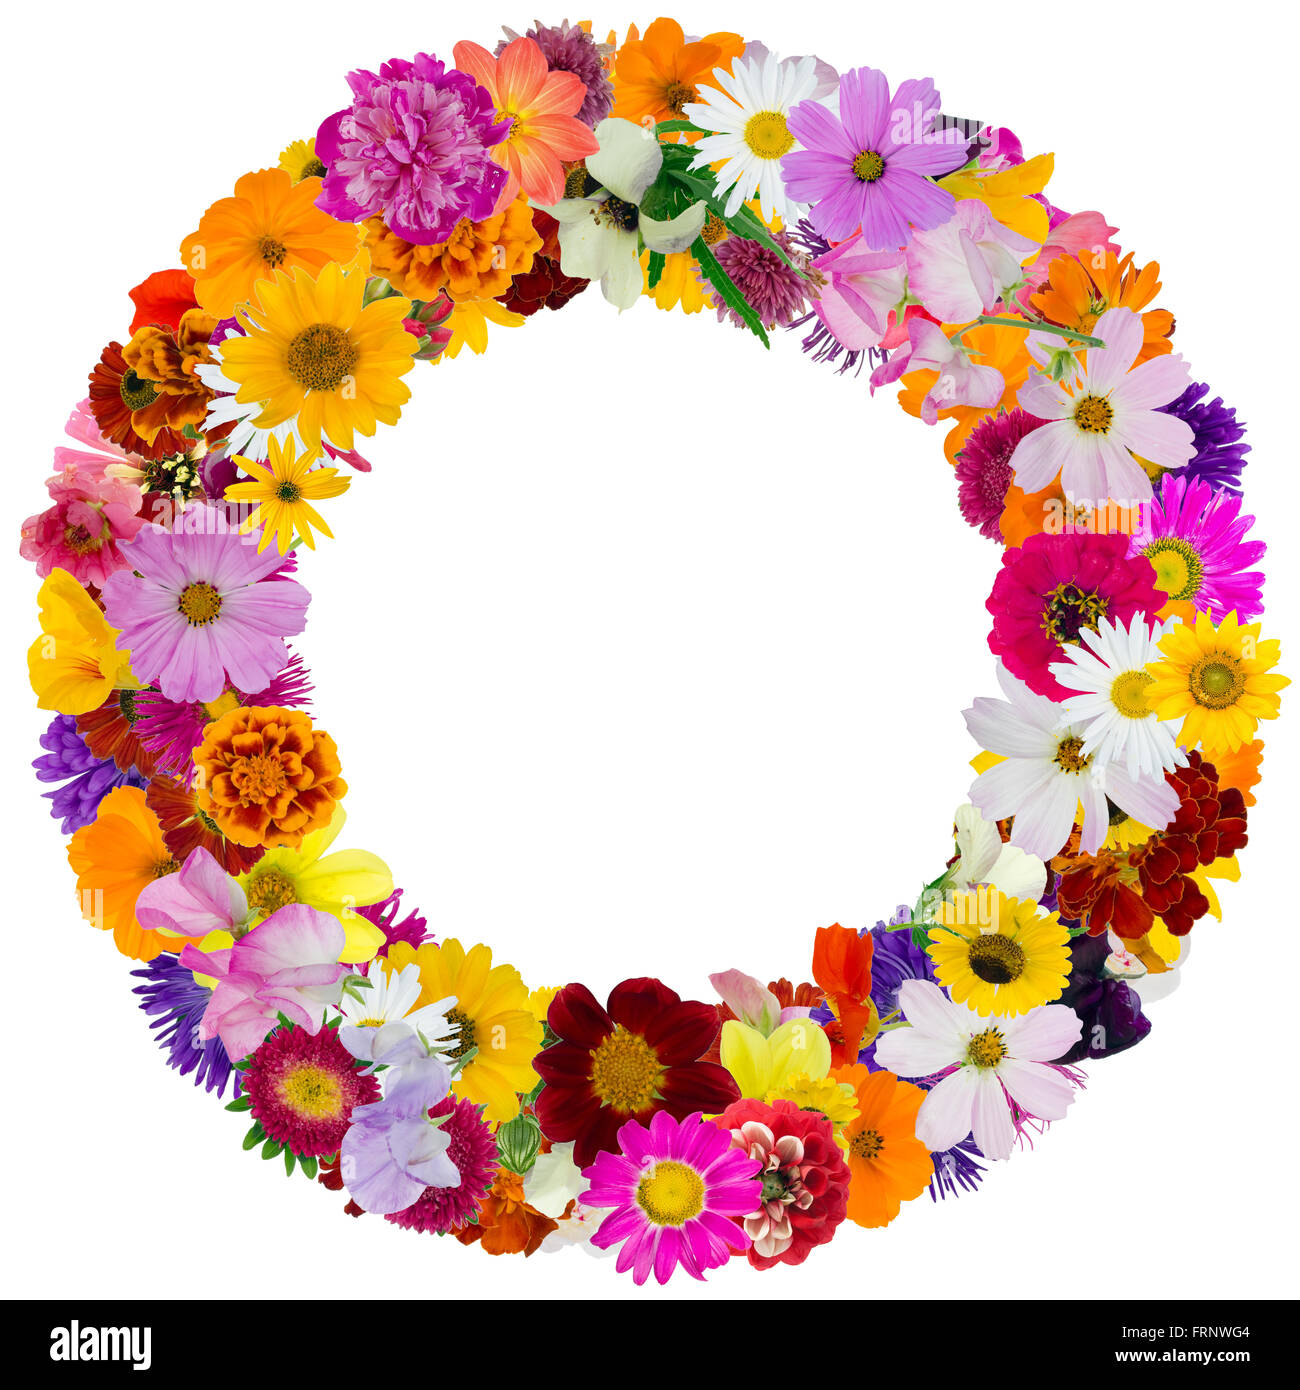 Round floral summer photo frame made from simple vivid fresh flowers. Isolated abstract collage Stock Photo